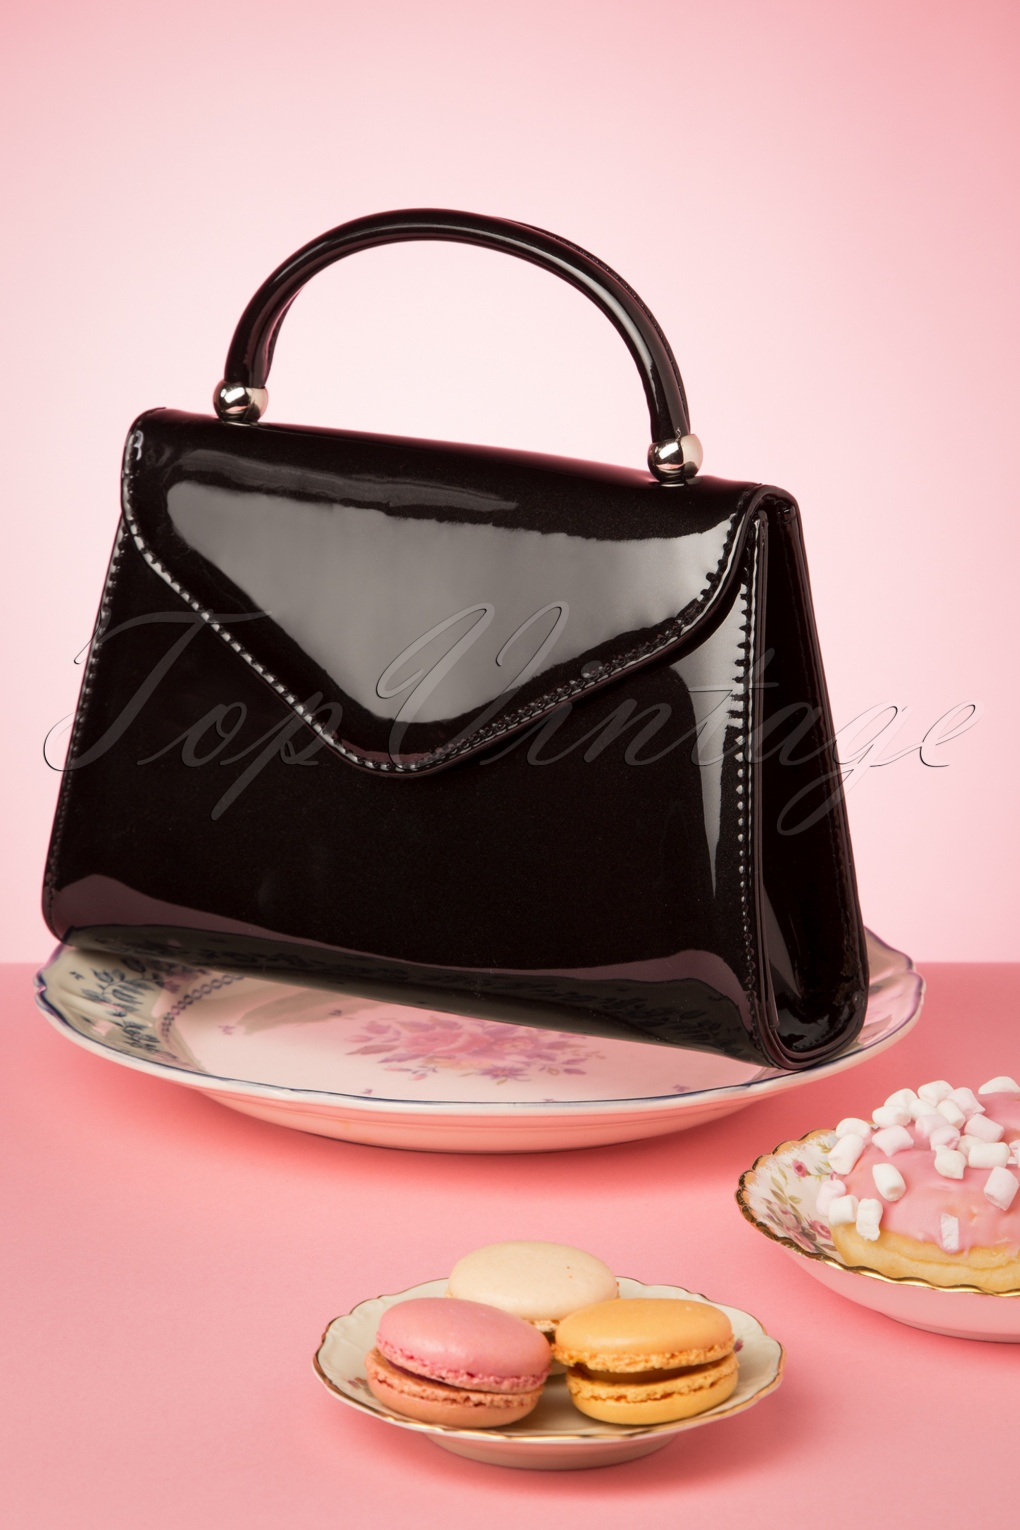 Vintage & Retro Handbags, Purses, Wallets, Bags 60s Lillian Lacquer Flap Bag in Black and Silver �23.79 AT vintagedancer.com